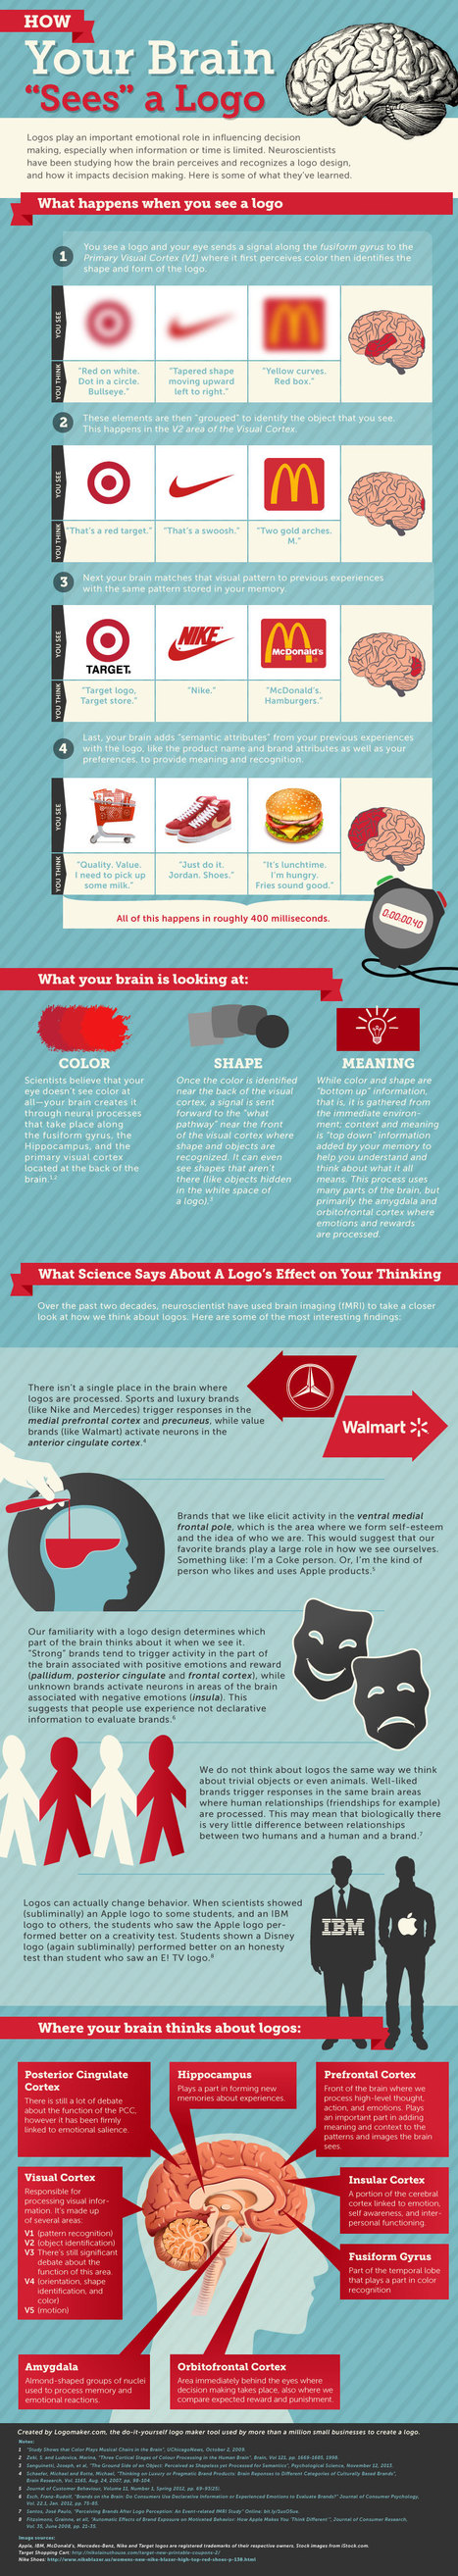 Interesting infographic: How your brain sees a logo | Consumer Behavior in Digital Environments | Scoop.it